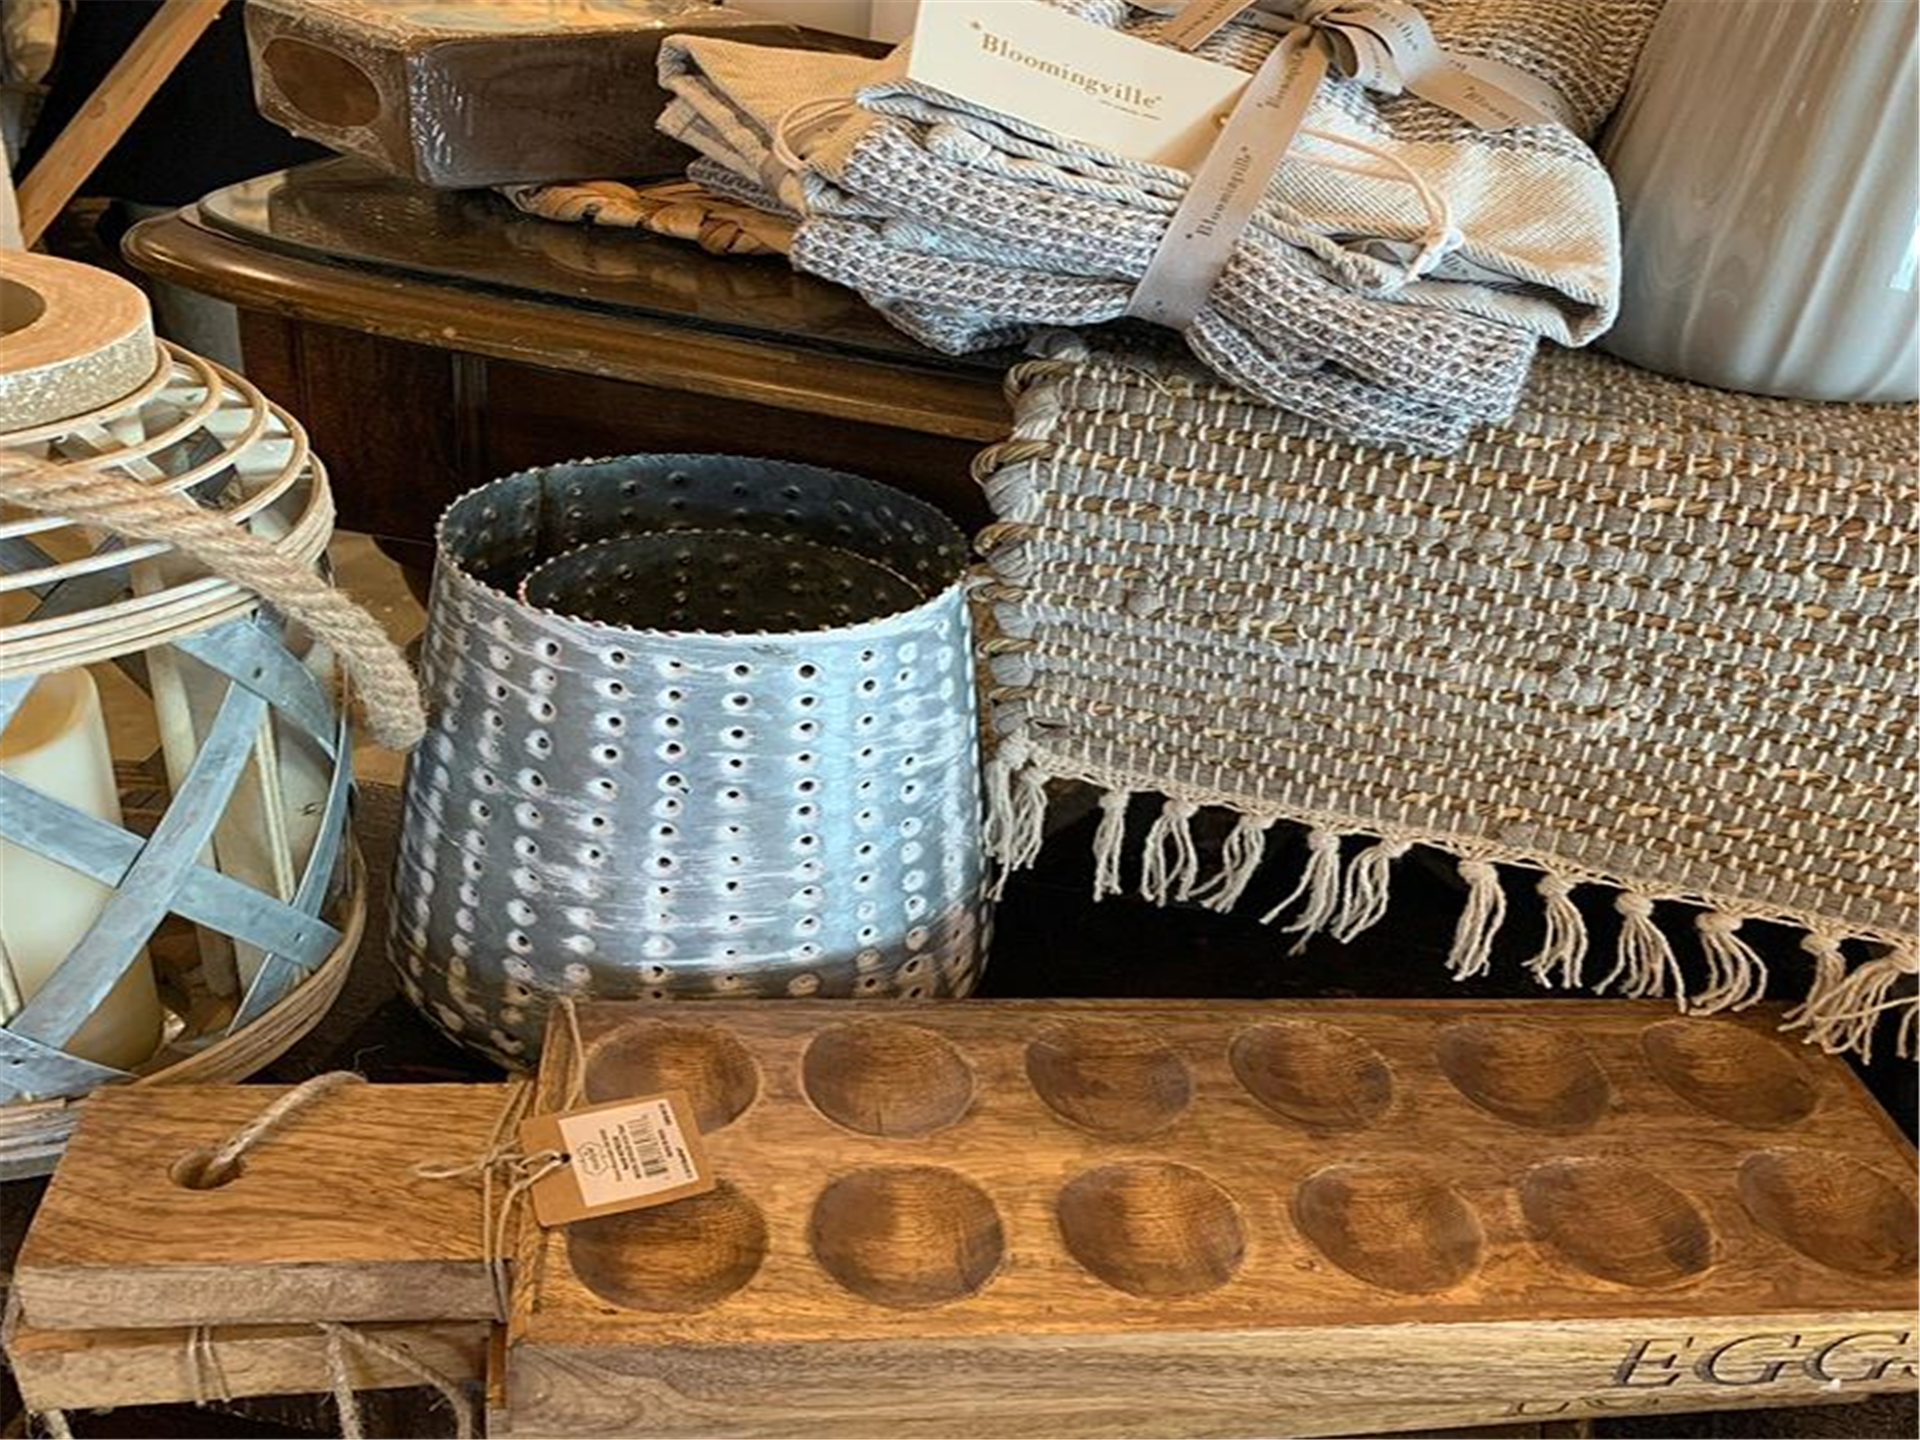 Rustic display of egg tray, woven place mats, lantern and candle holder